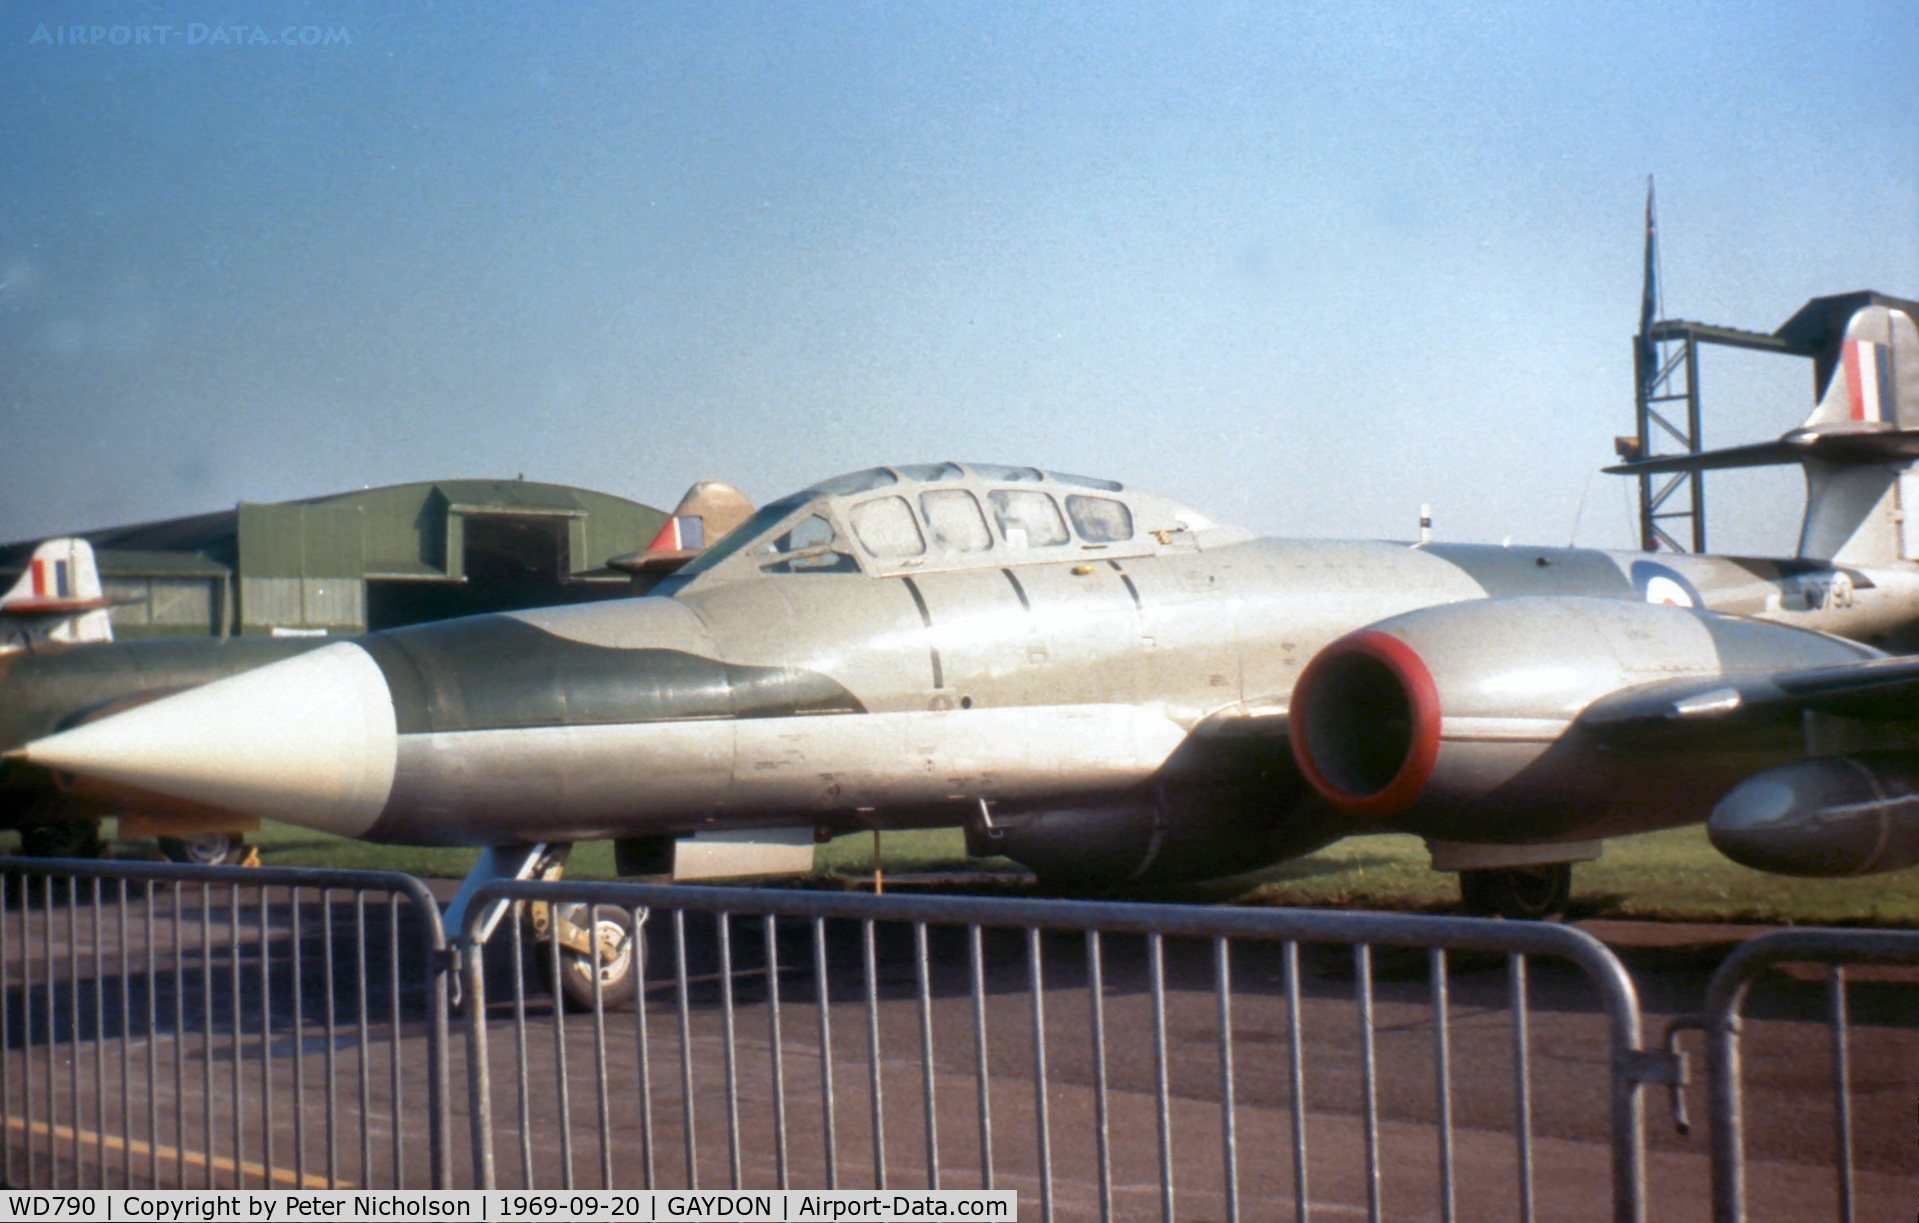 WD790, 1952 Gloster Meteor NF.11 C/N Not found WD790, Meteor NF.11 radar trials aircraft from the Royal Radar Establishment at Pershore on display at the 1969 Battle of Britain Airshow at RAF Gaydon.